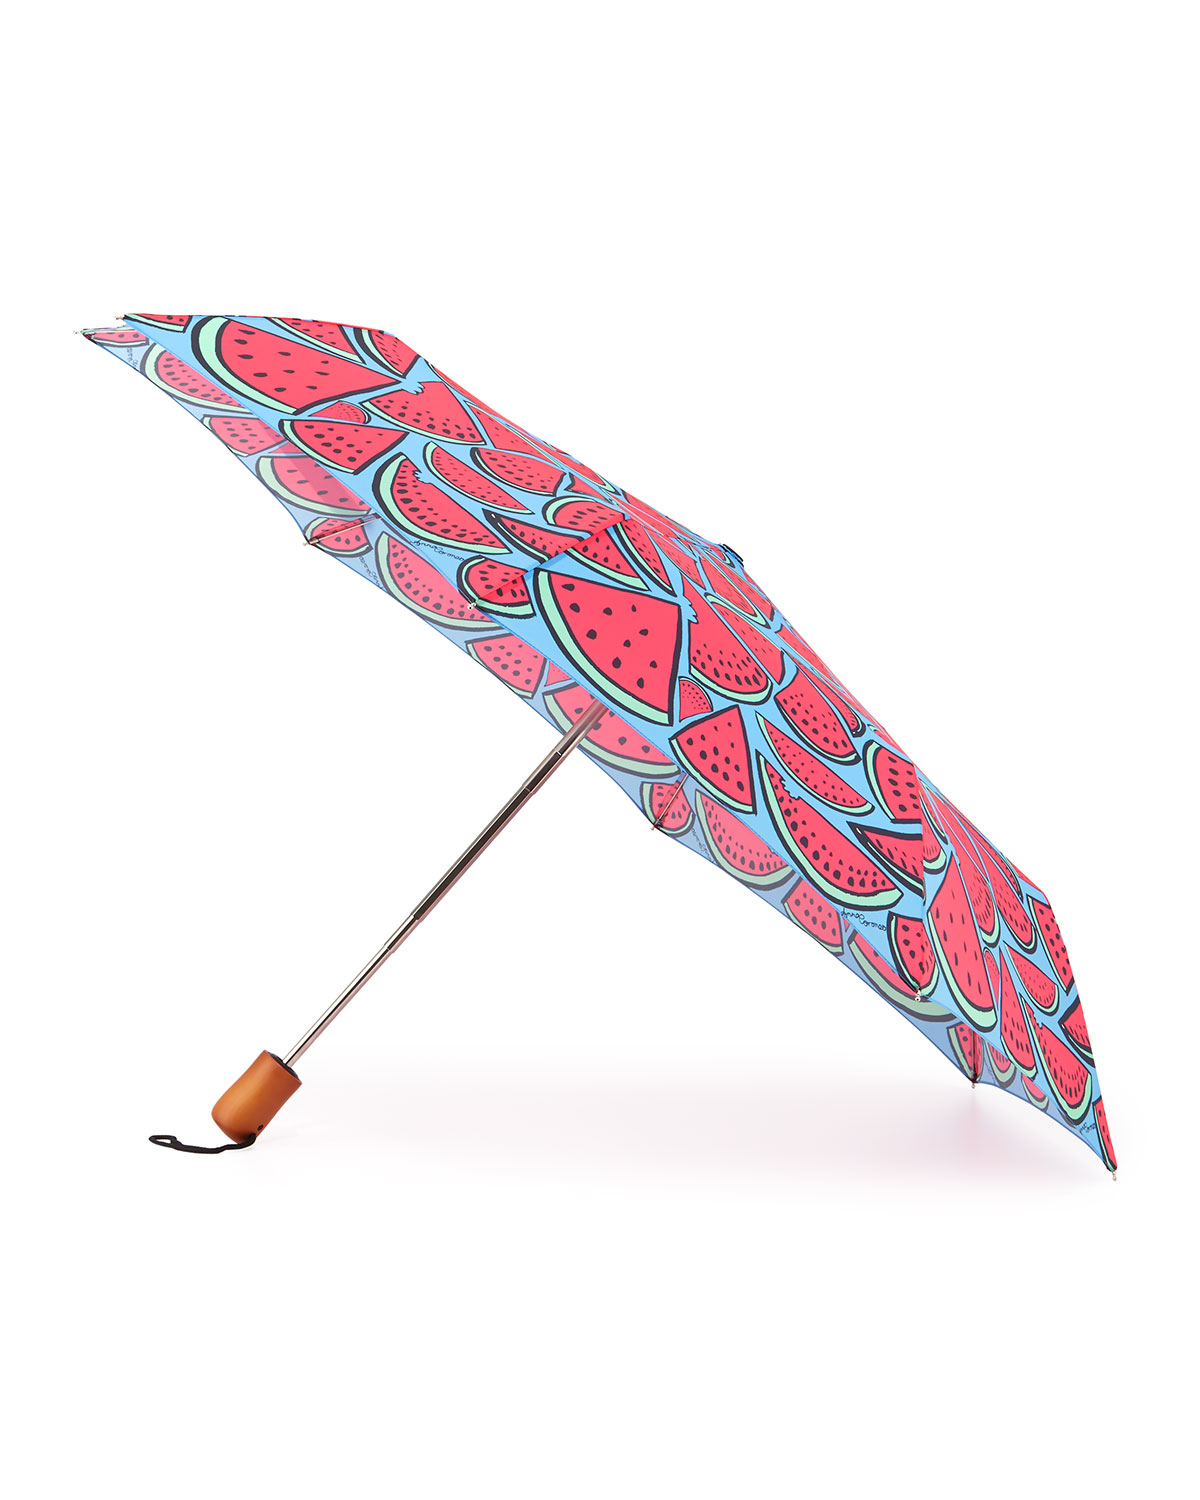 Watermelon-Print Umbrella, Pink